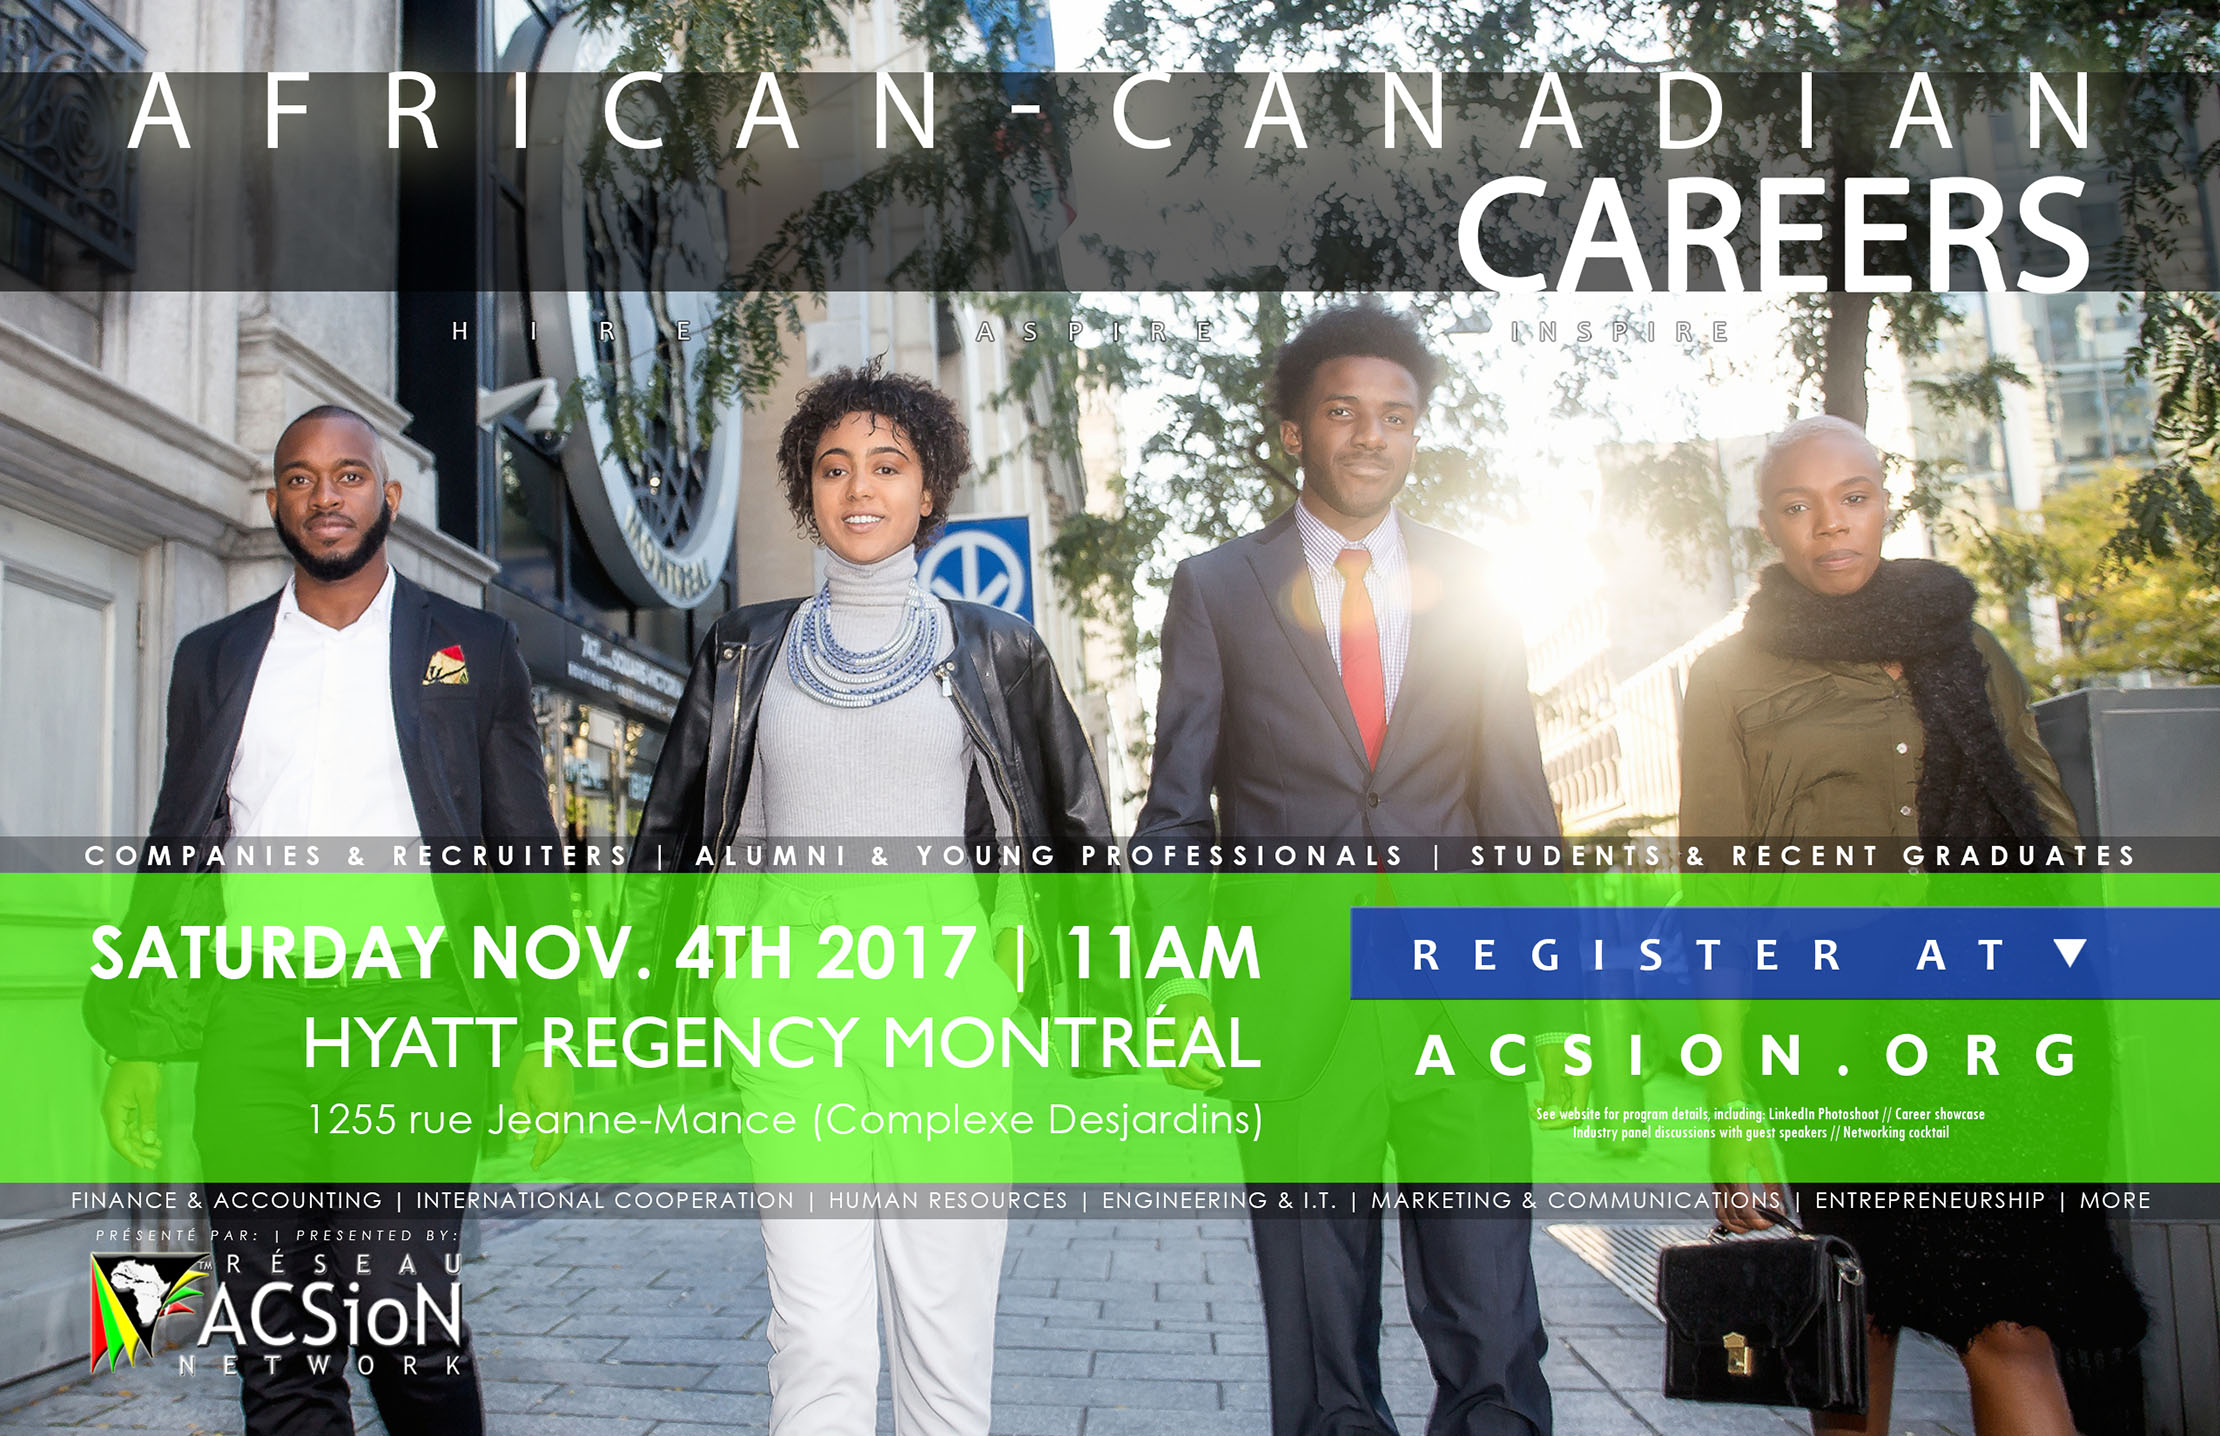 Poster and registration link for African-Canadian Careers 2017